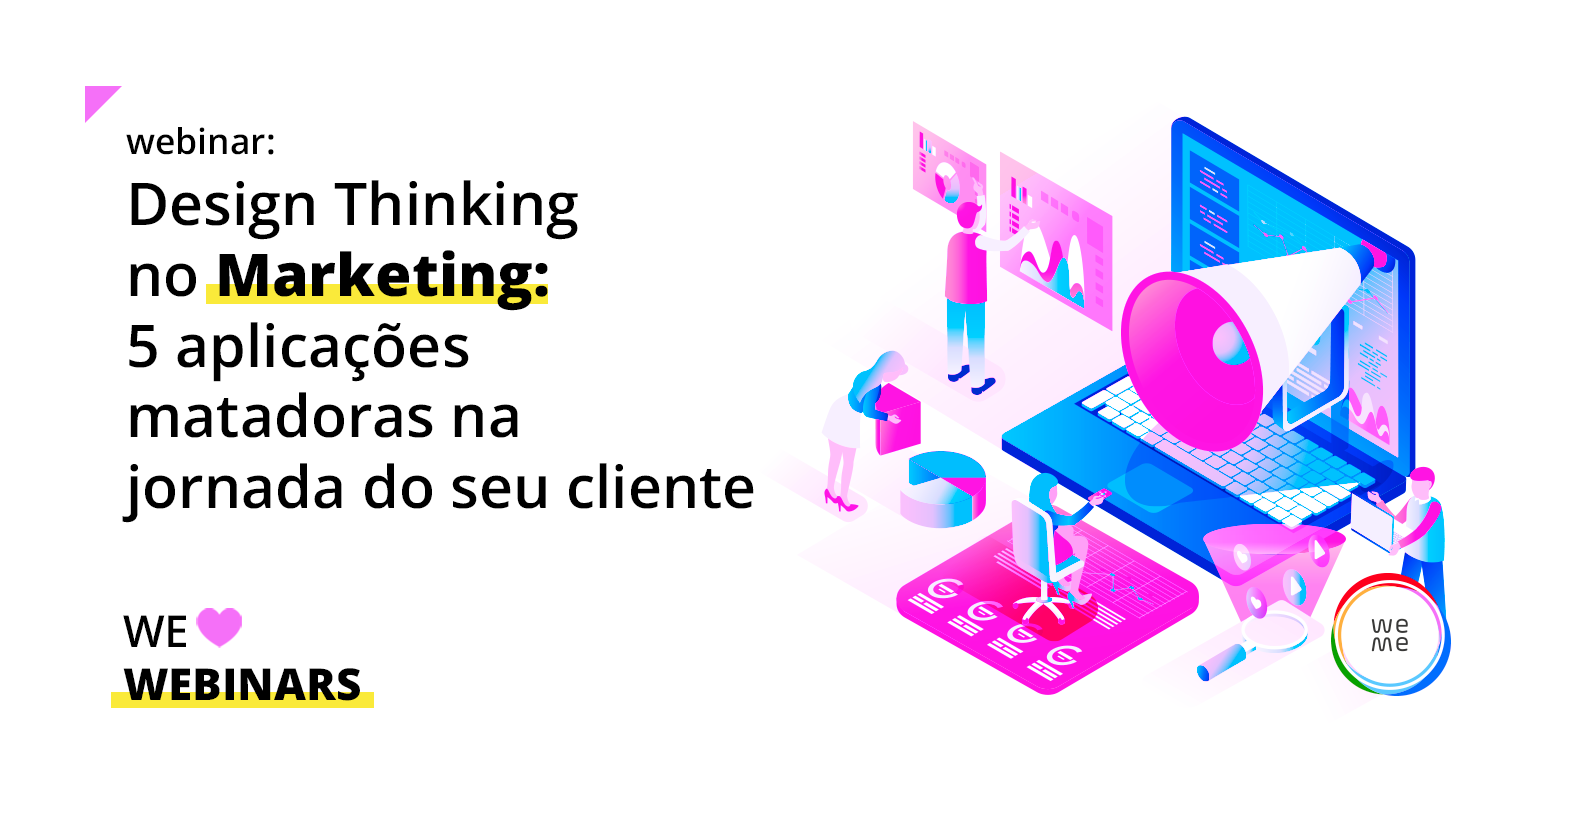 Design Thinking no Marketing: 5 aplicações matadoras na jornada do seu cliente